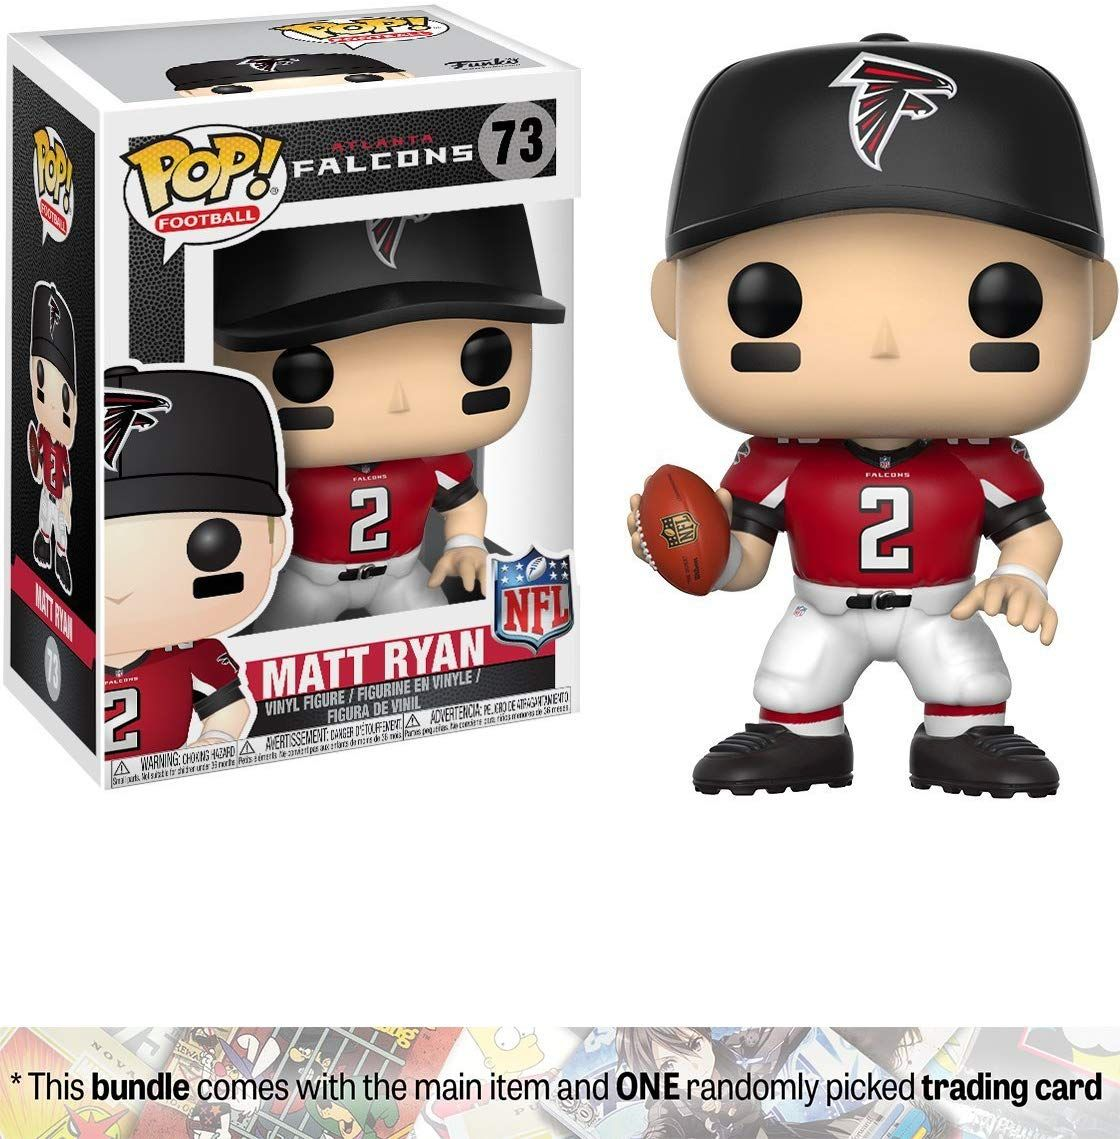 Matt Ryan Falcons Home Funko Pop Football X Nfl Vinyl Figure 1 Official Nfl Trading Card Bundle 20164 Matt Ryan Matt Ryan Falcons Pop Figurine